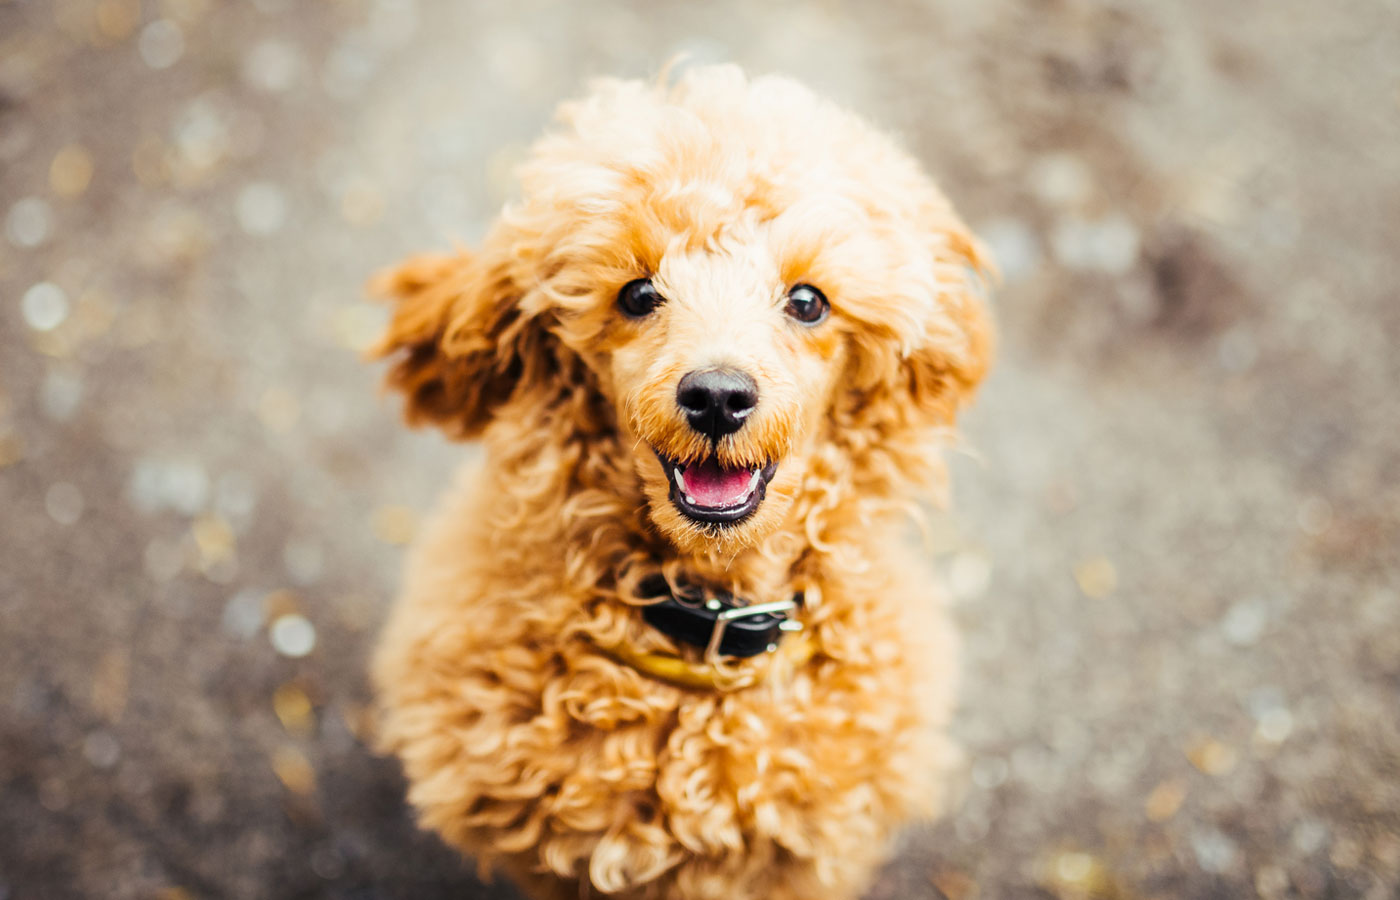 Brown cute poodle puppy sitting on the ground and looking up